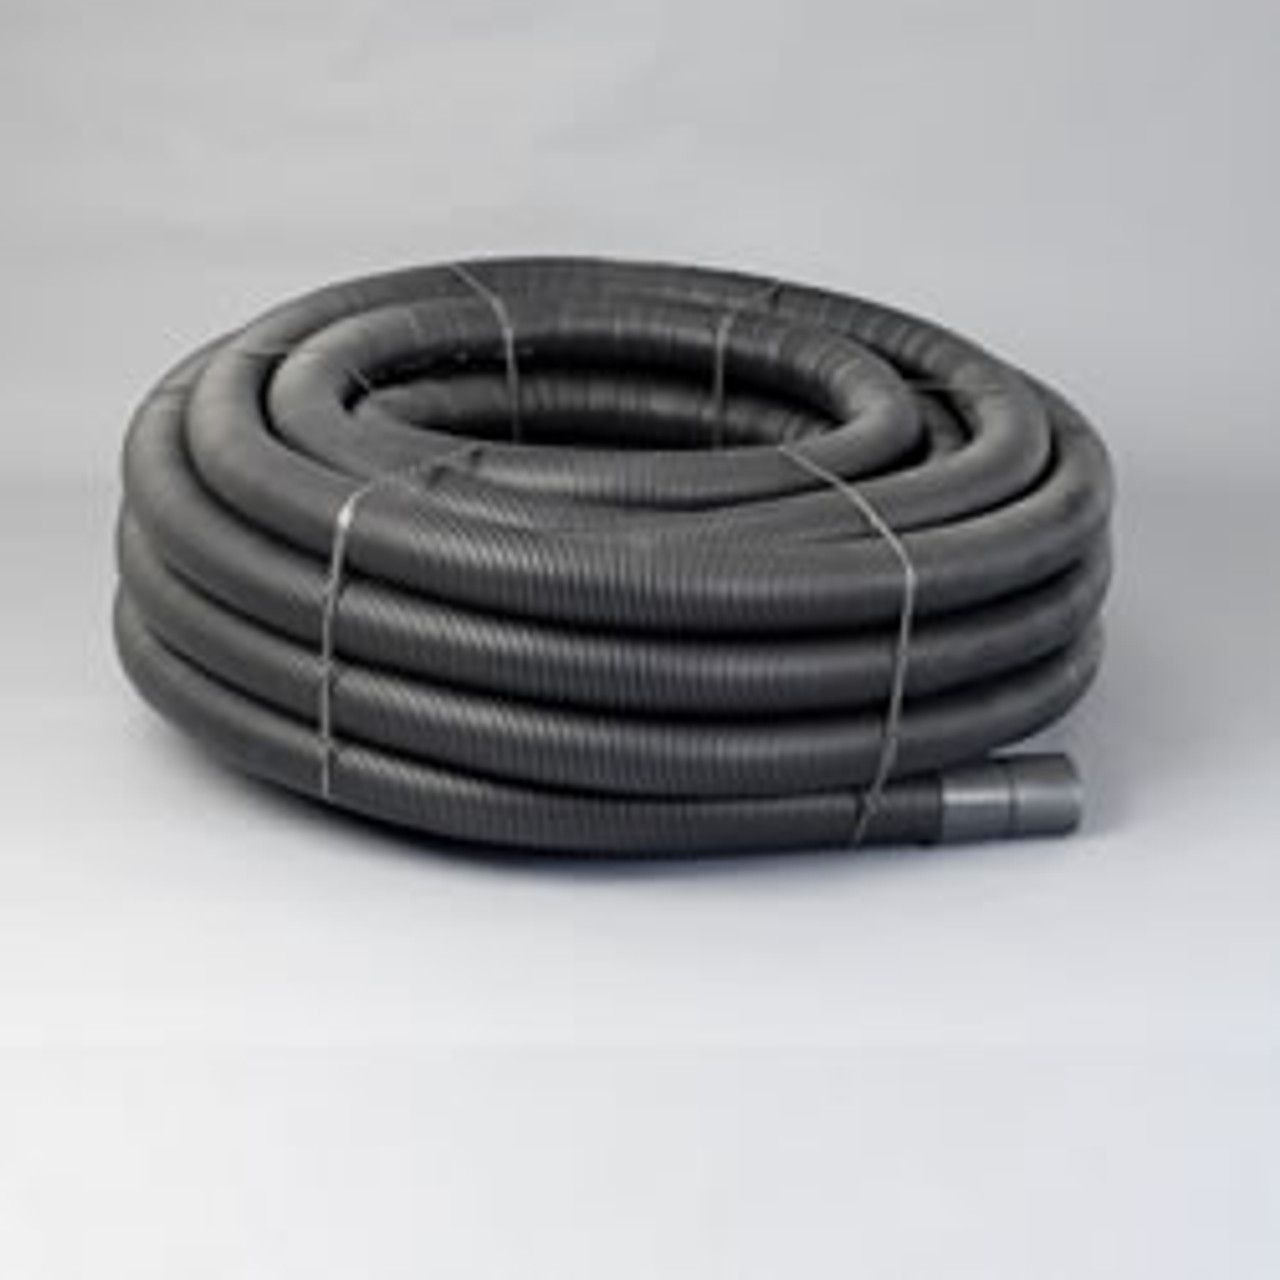 94/110mm class 3 power ducting coil (50m).